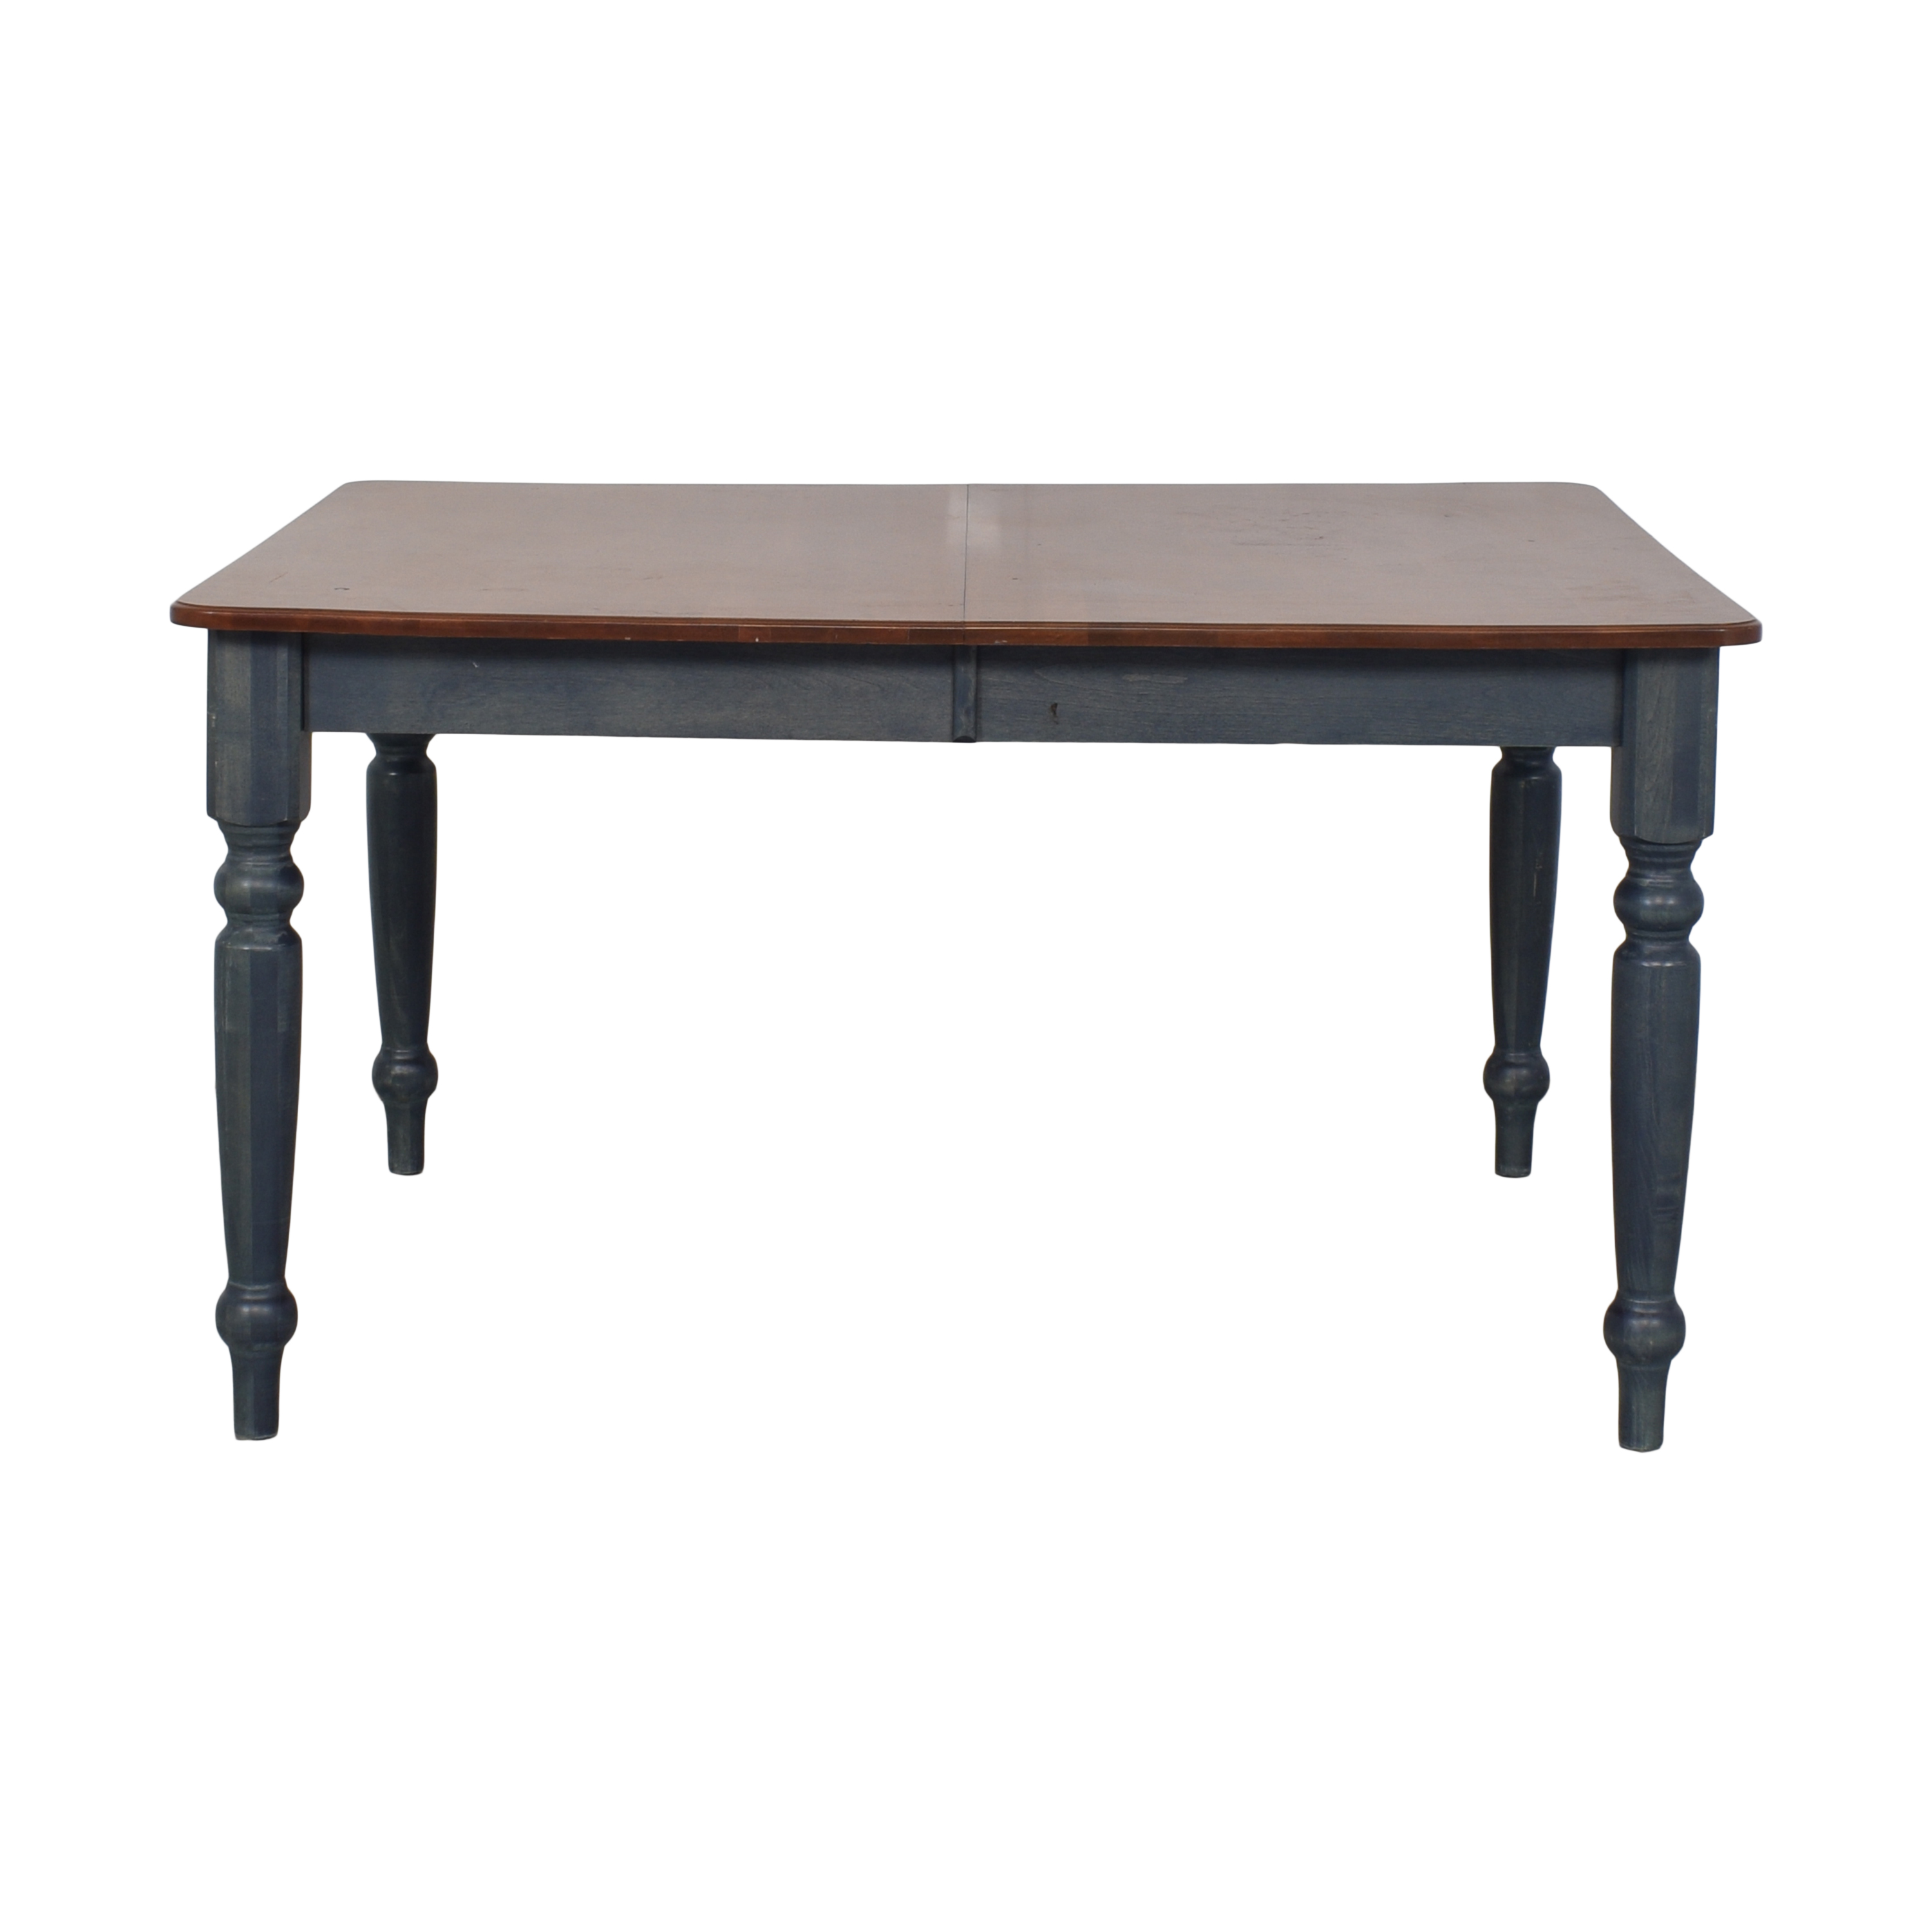 buy Canadel Canadel Dining Room Table online